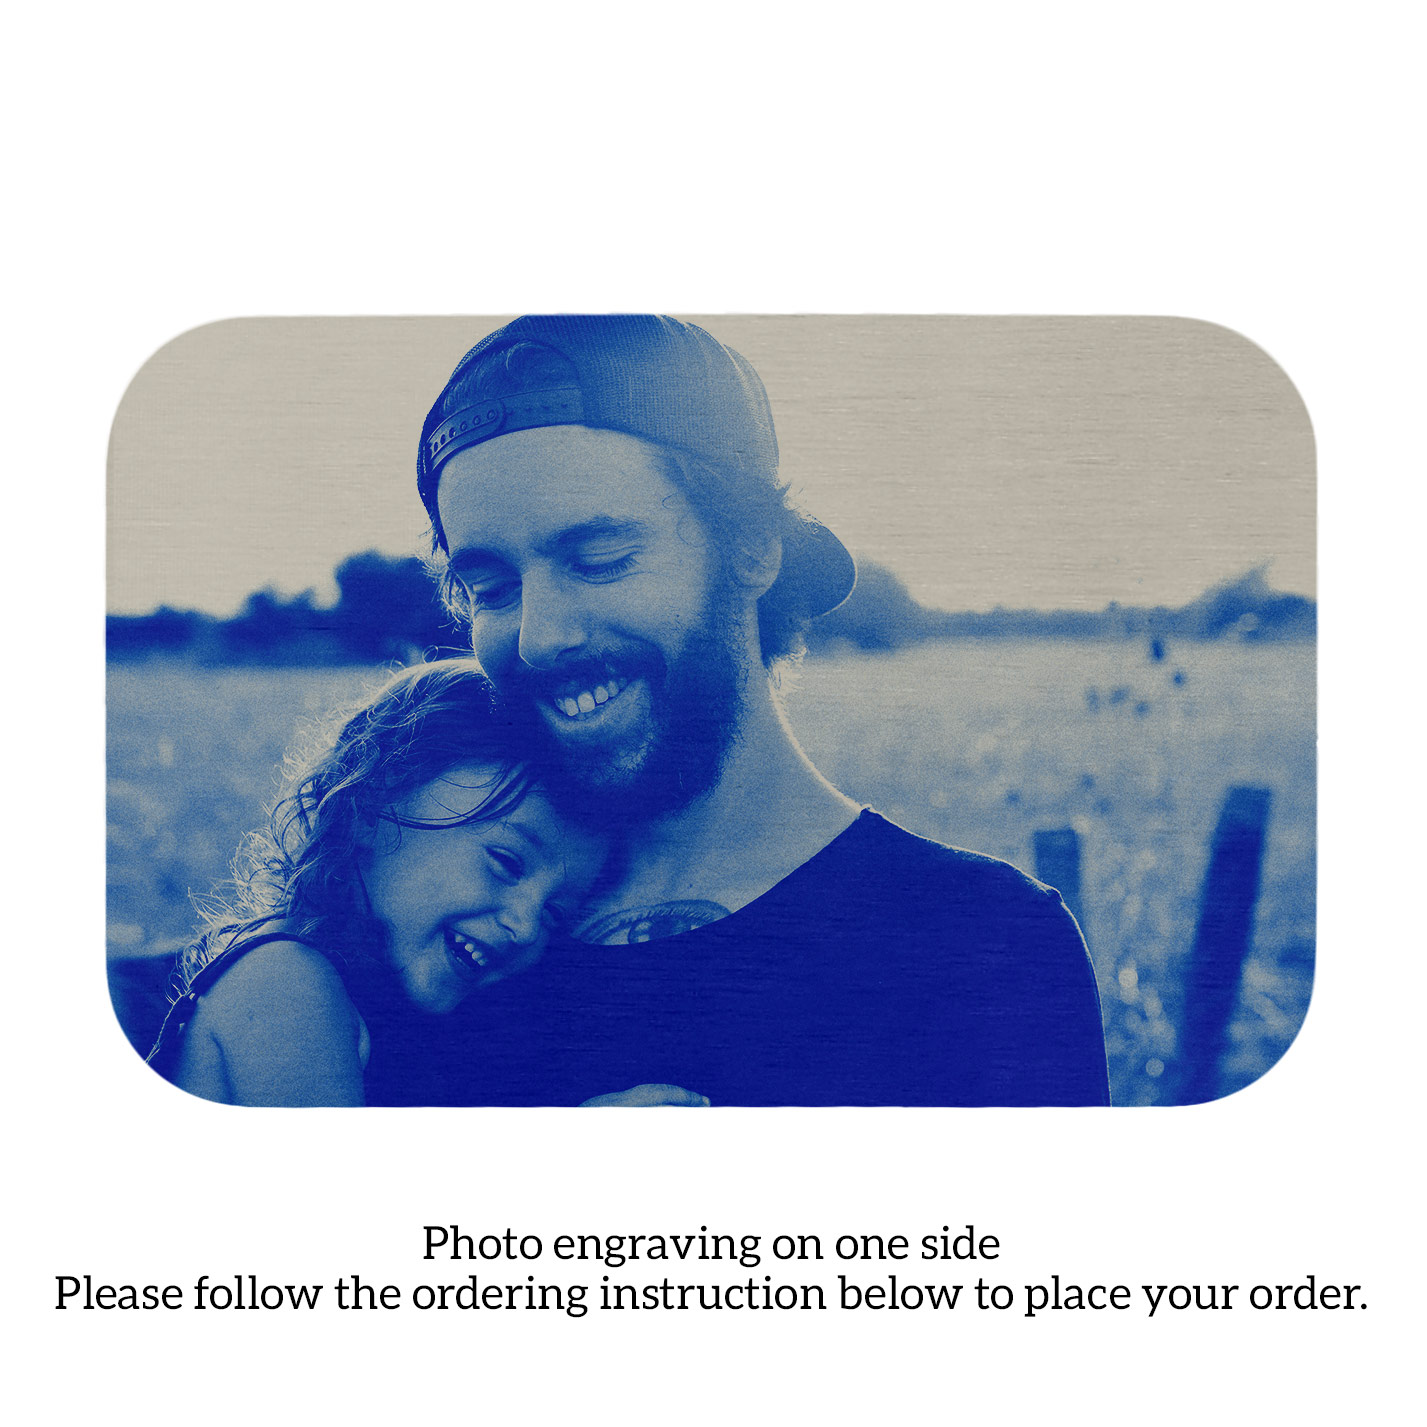 Stainless Steel Personalized Photo Text Engraved Best Dad Wallet Card Father\'s Day Birthday Gift Blue